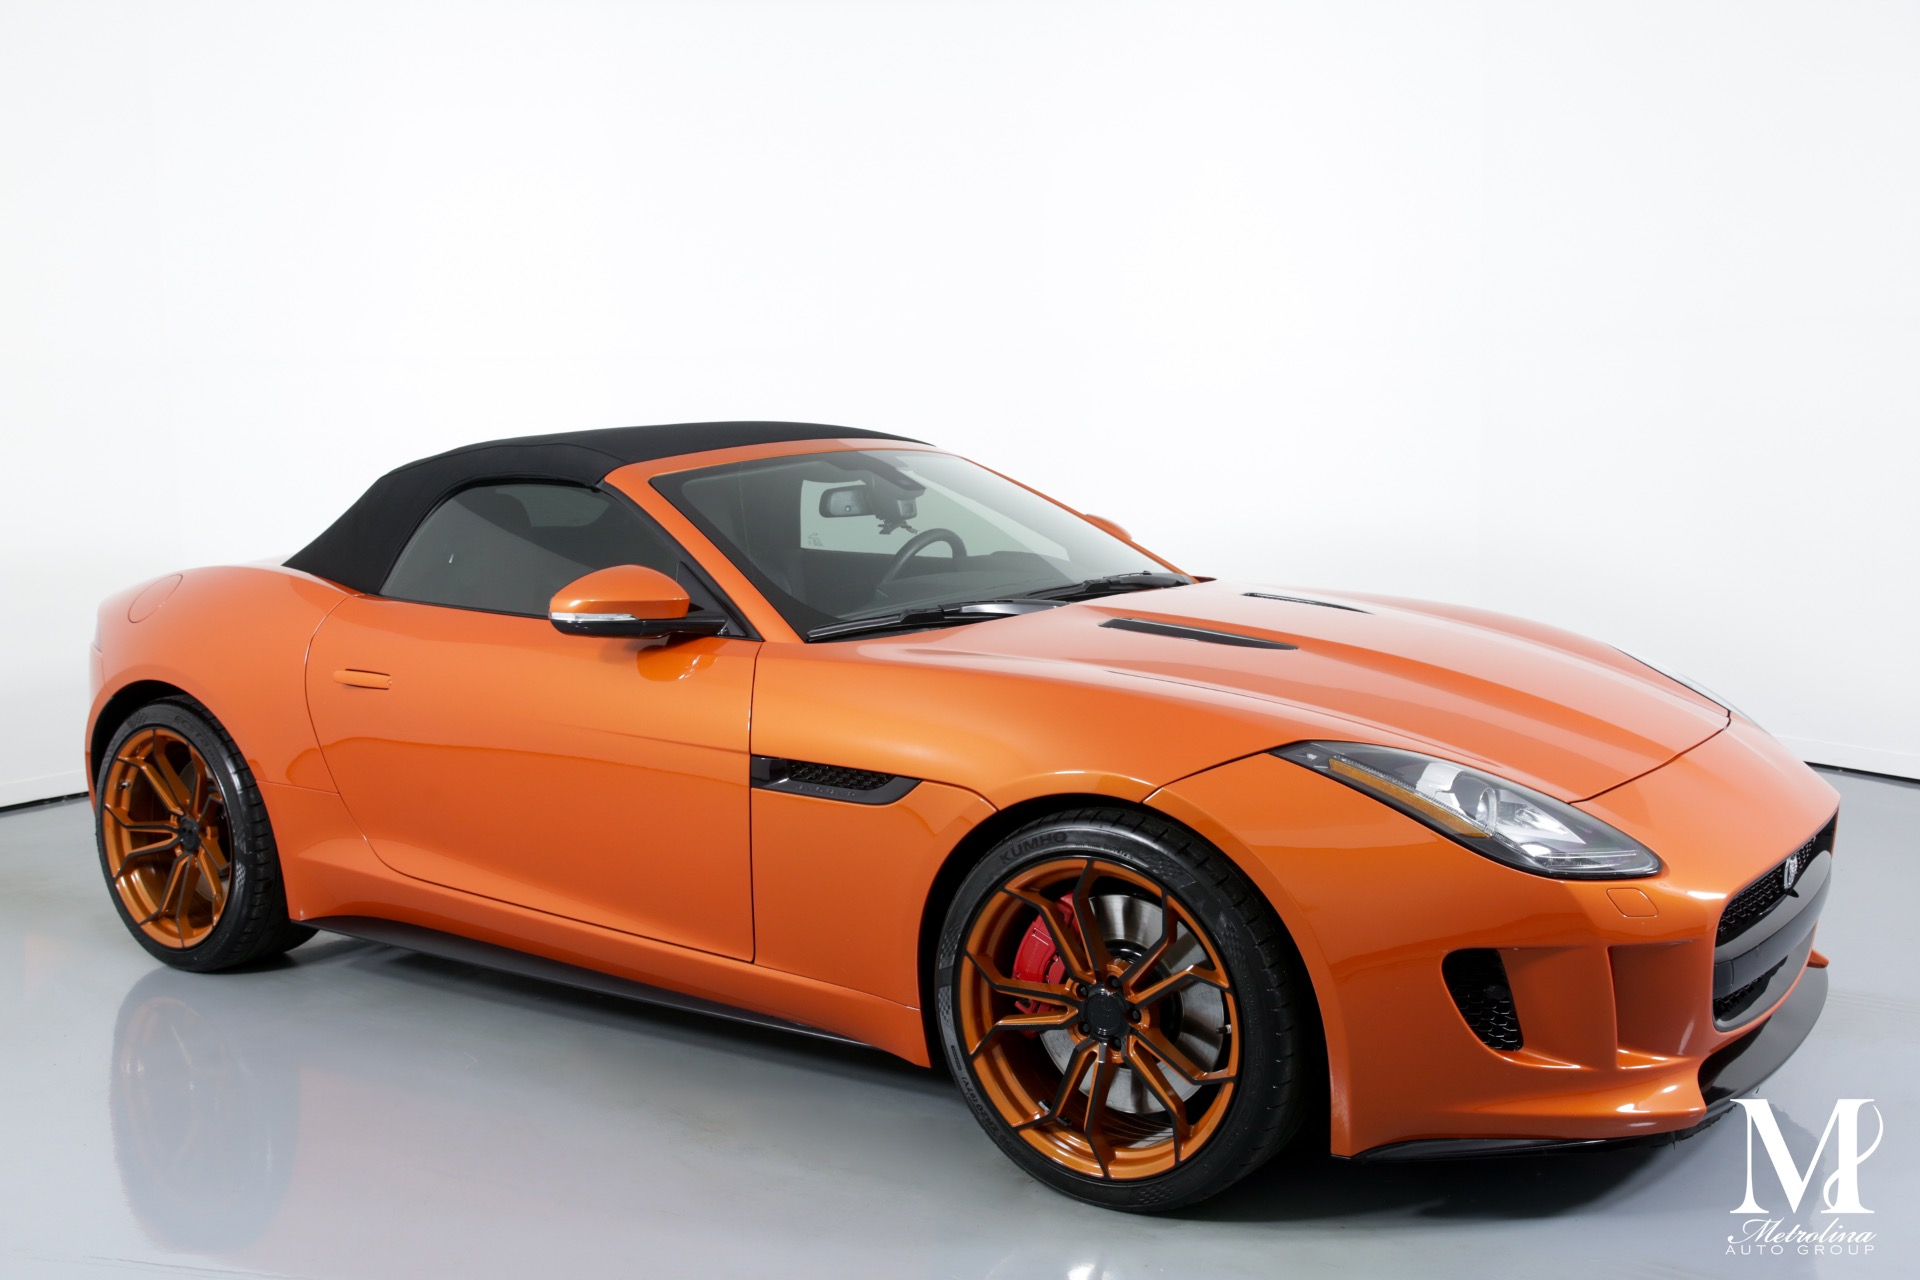 Used 2014 Jaguar F-TYPE V8 S for sale $40,996 at Metrolina Auto Group in Charlotte NC 28217 - 2